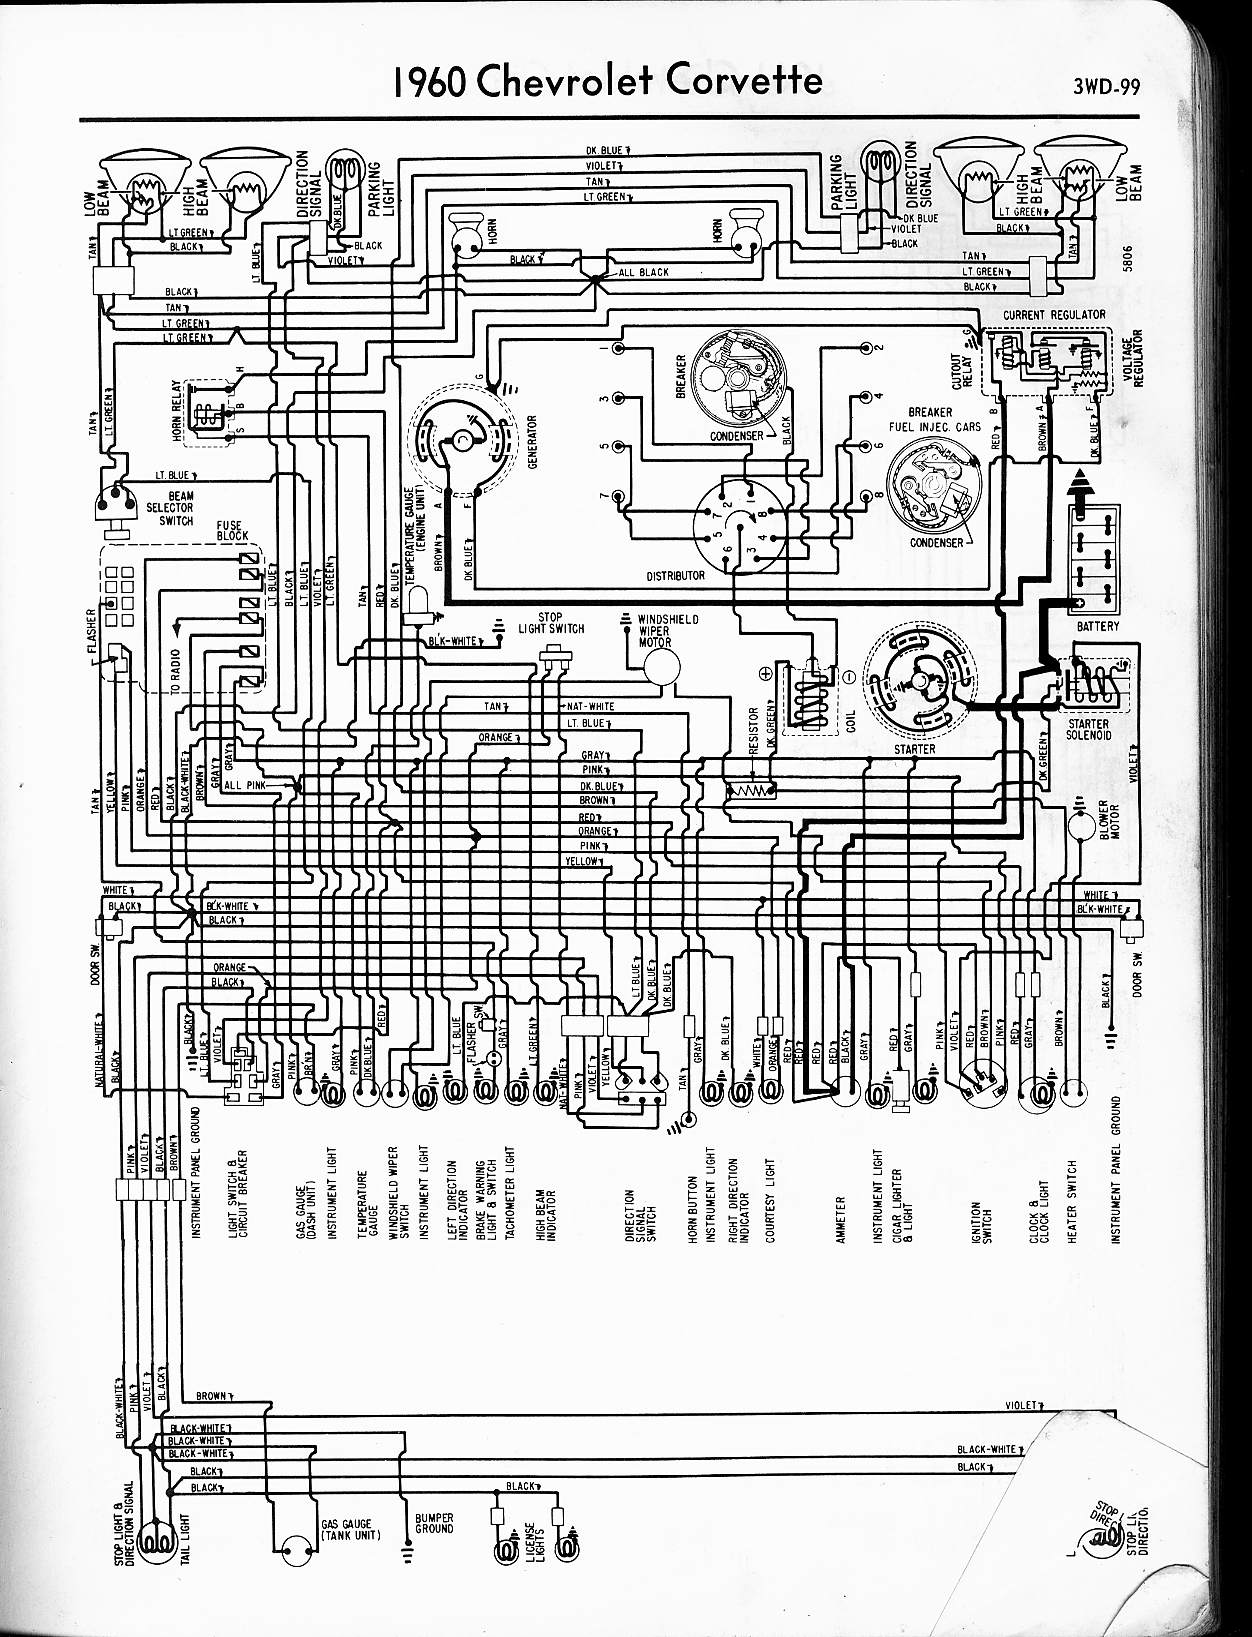 60 Apache Wiring Diagram Detailed Schematics Katolight 1959 Chevy Headlight Helicopter 64 Ah Schemhtic